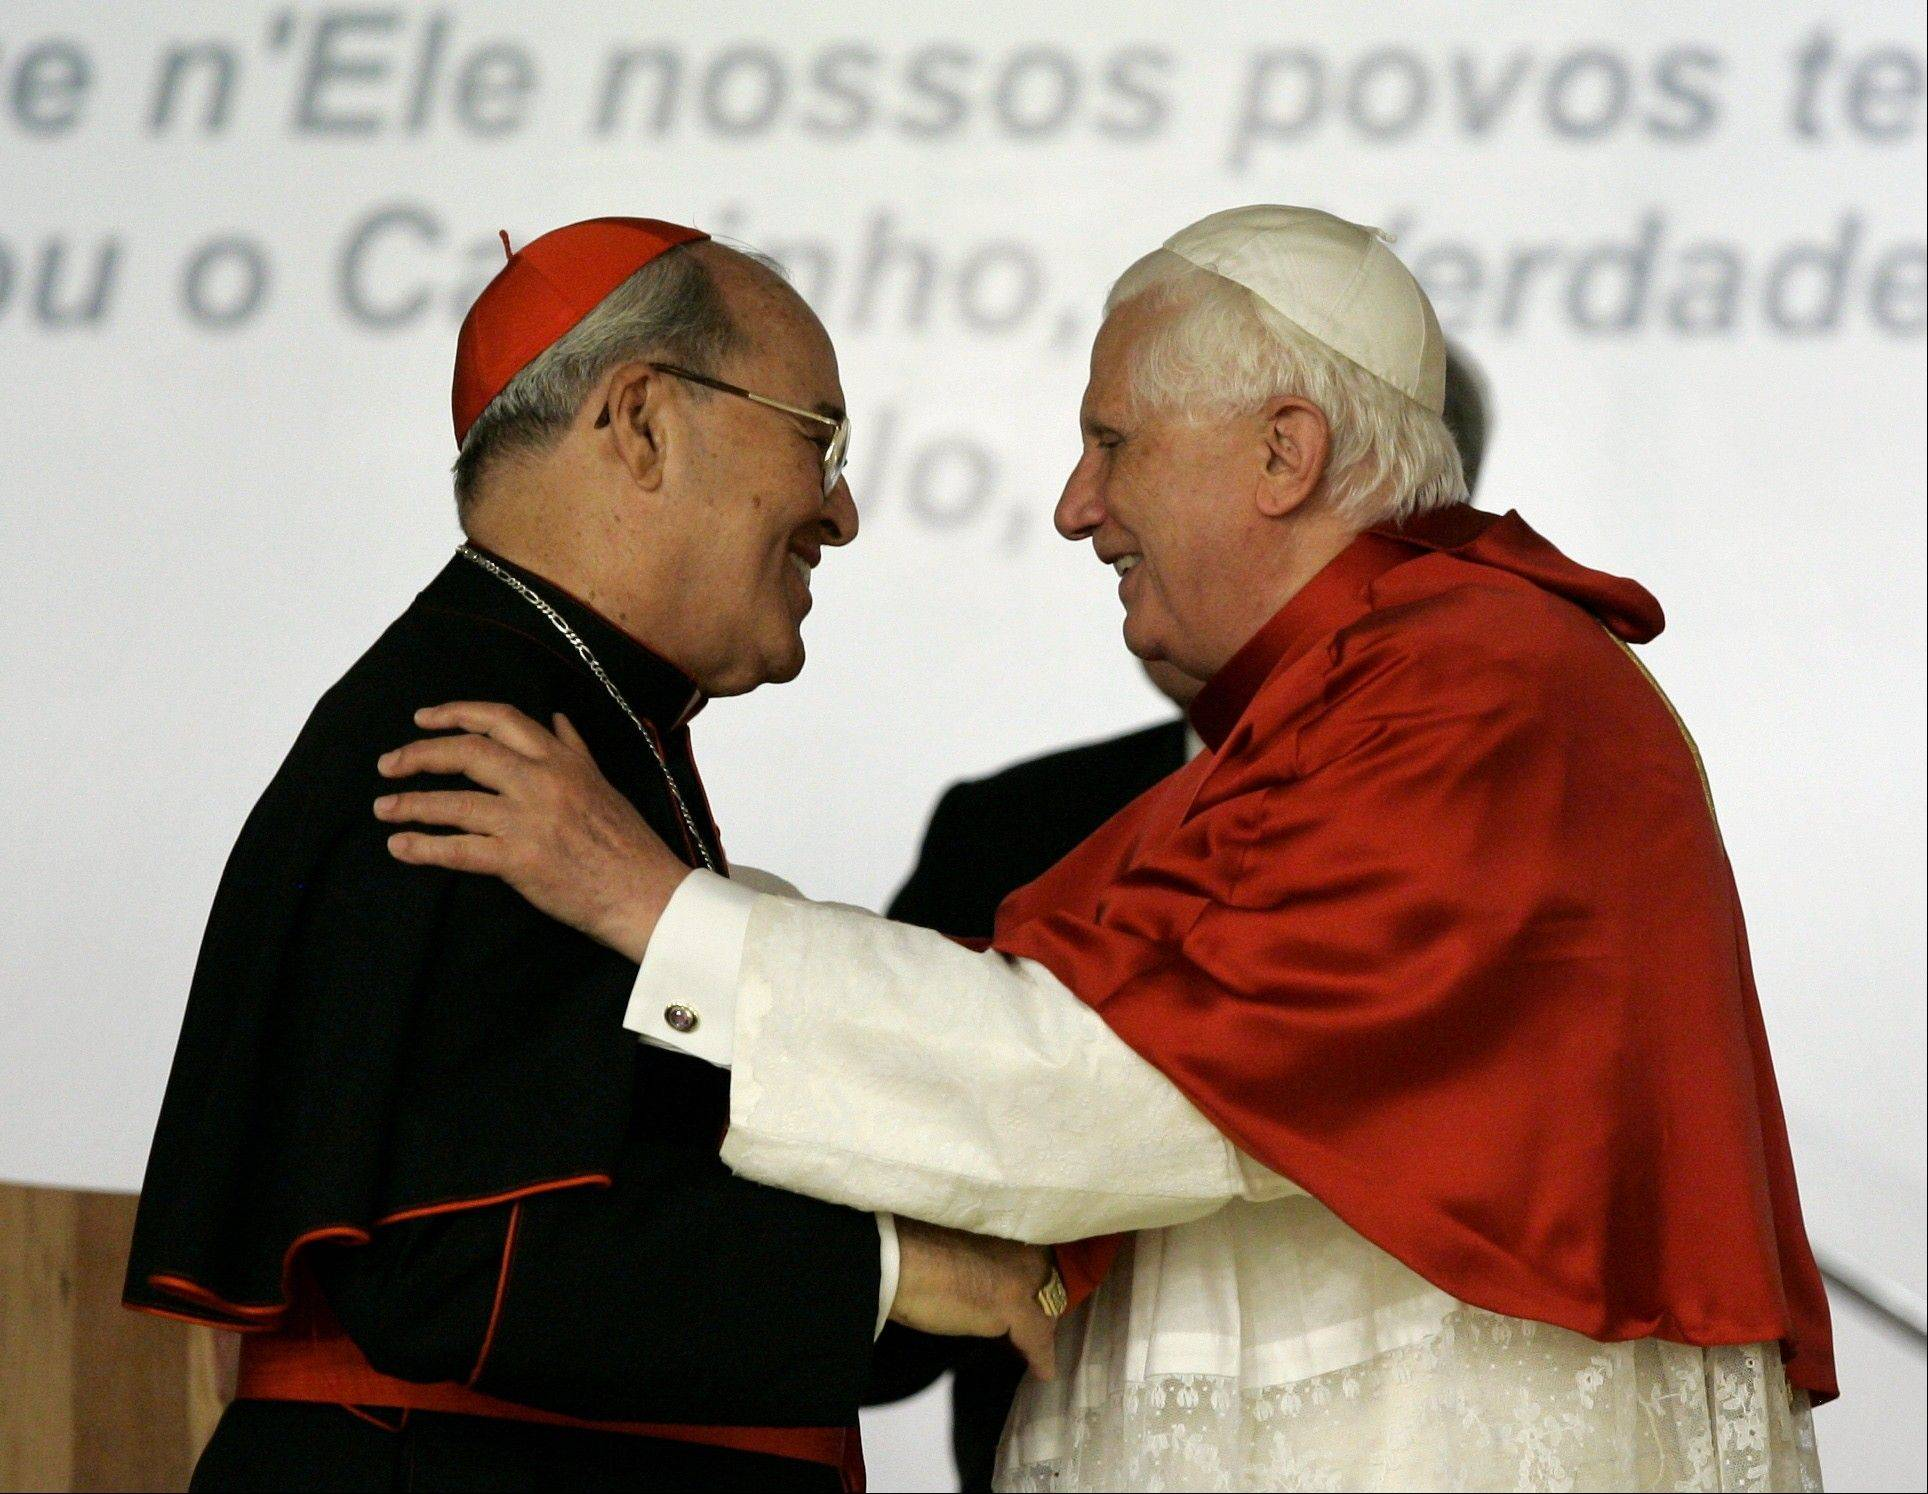 Pope Benedict XVI, right, embraces Cardinal Jaime Ortega Alamino, Archbishop of Havana, Cuba, during the inauguration ceremony of the V Conference of Latin American and the Caribbean Bishops in Aparecida, Brazil. When a young parish priest named Jaime Ortega was freed from detention at the height of the communist onslaught against religion in Cuba, his father handed him a one-way ticket to Spain and urged him not to look back. But Ortega refused to go. Today, he is Cuba's cardinal, about to receive a visit from Pope Benedict XVI while playing an important role in coaxing President Raul Castro's government along the path of reform.